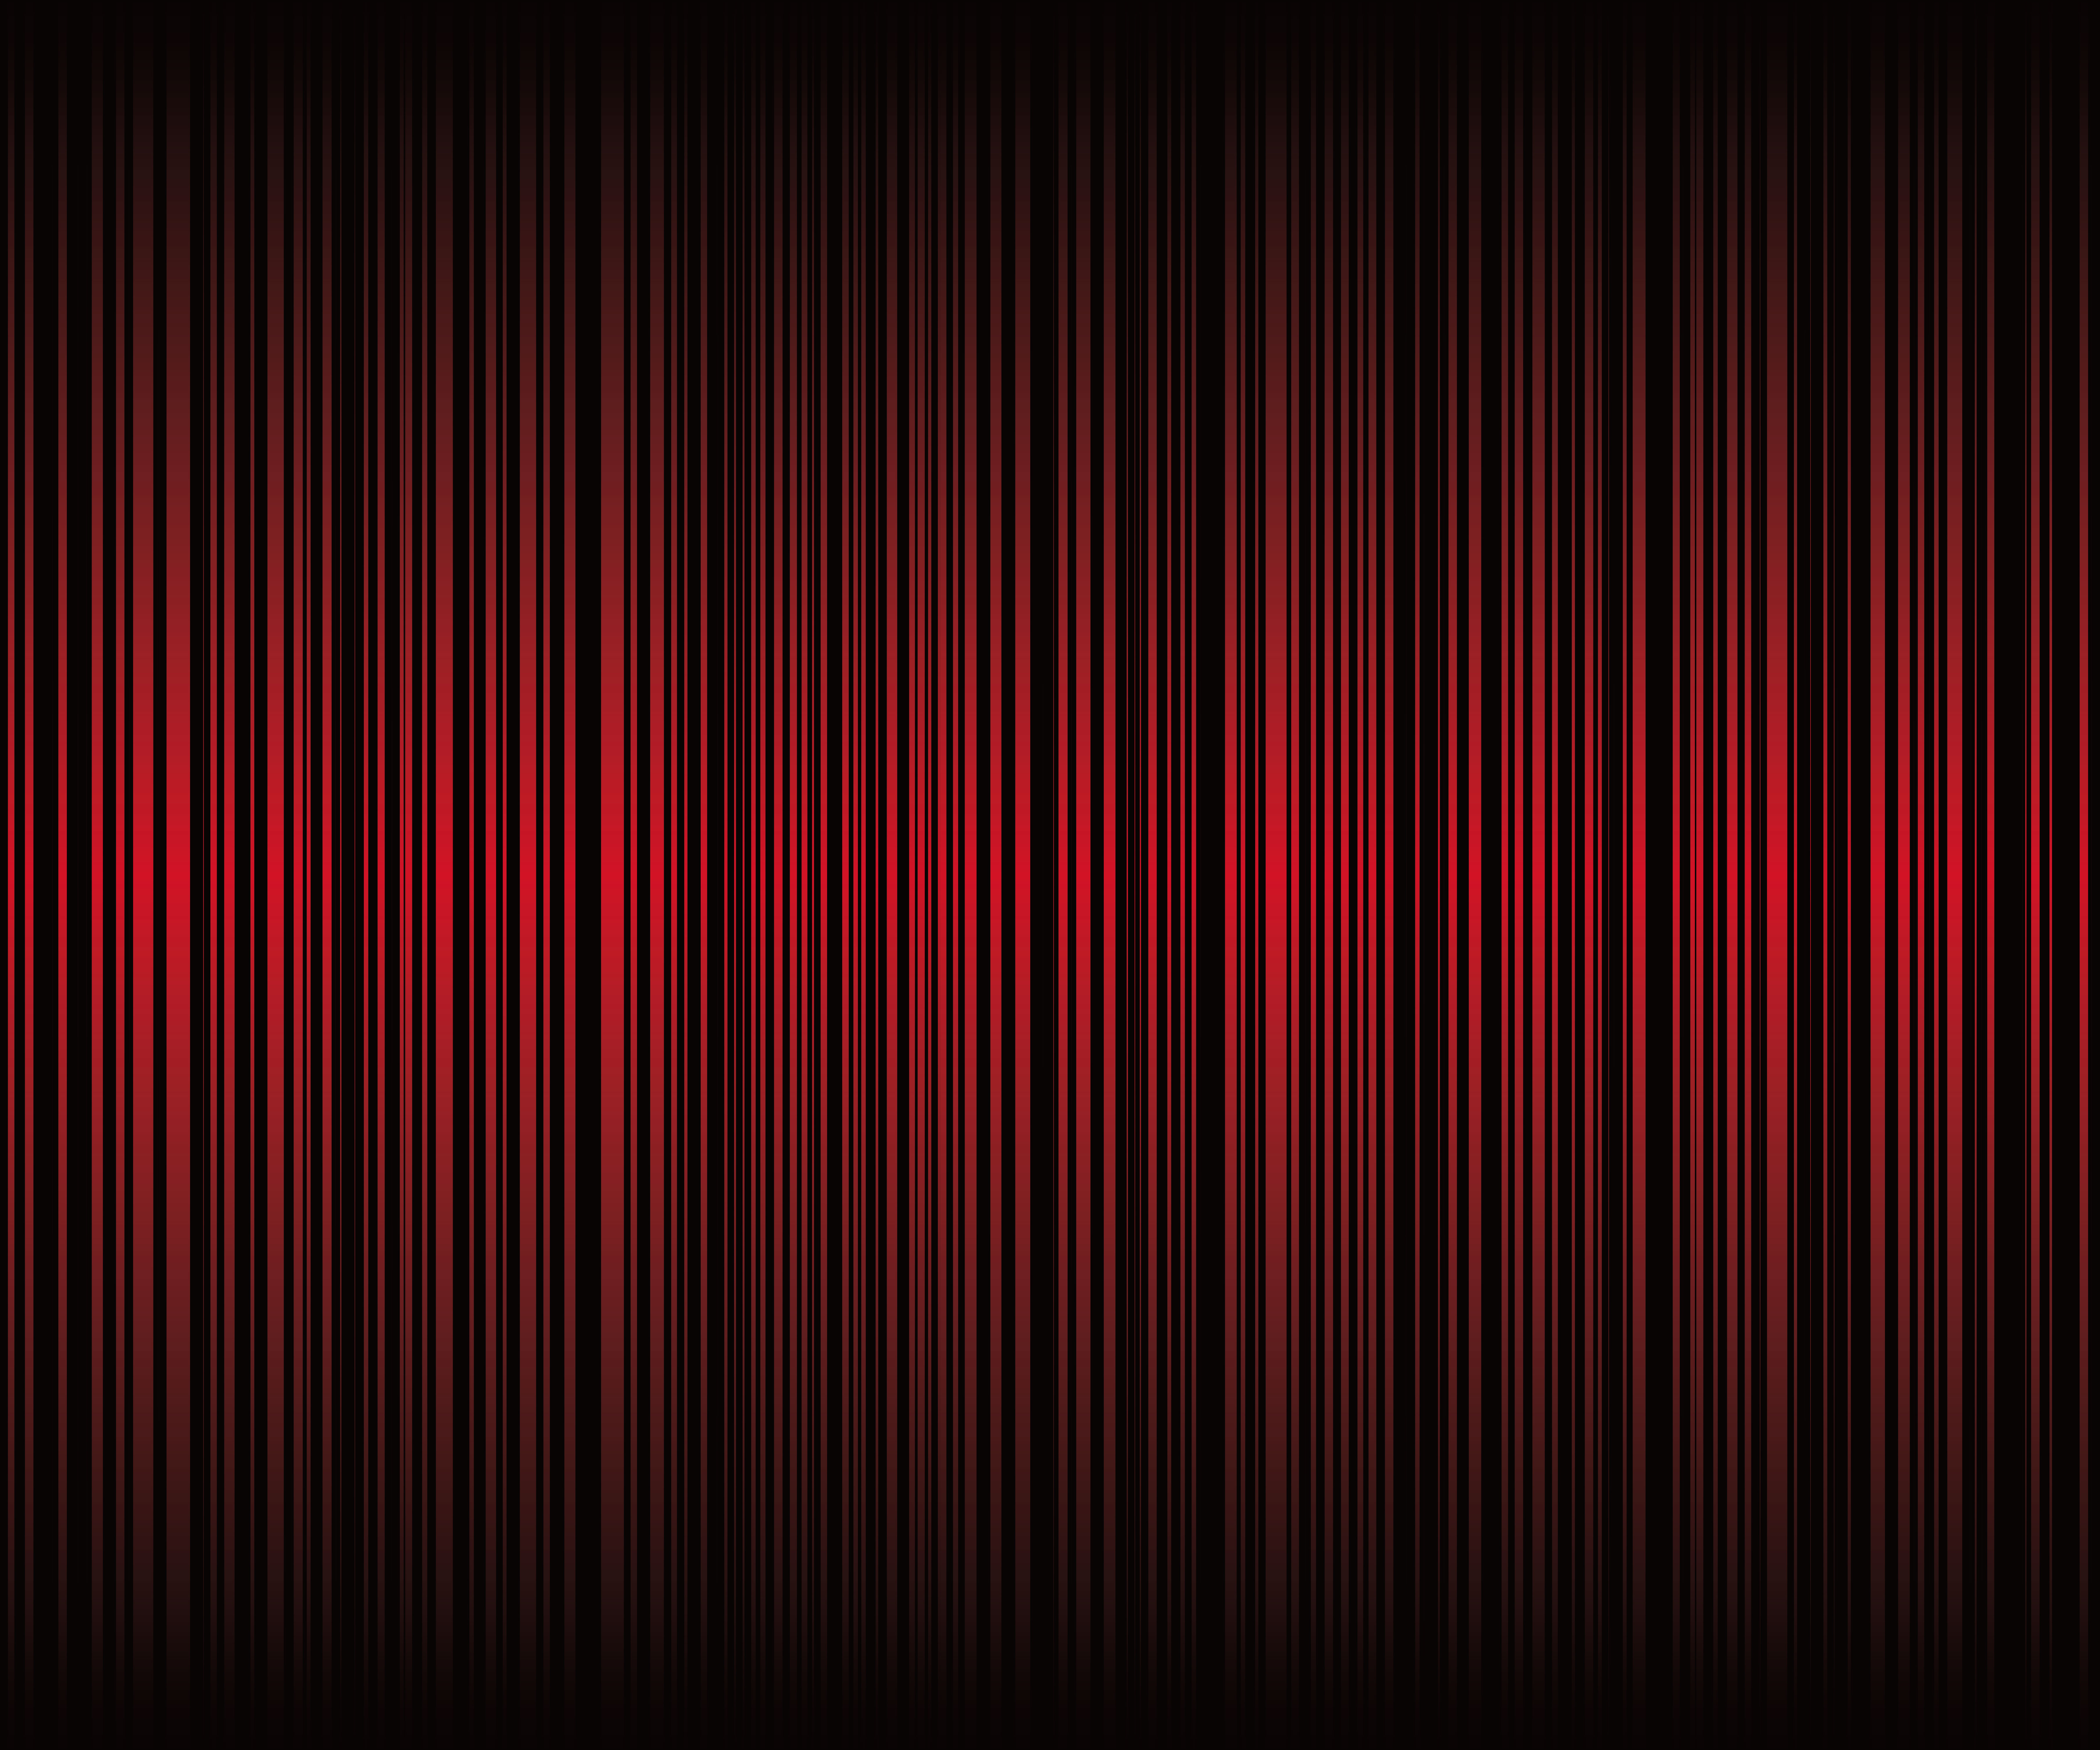 Fall Baby Animal Wallpaper Atmospheric Vertical Stripes Vector Background Red Black